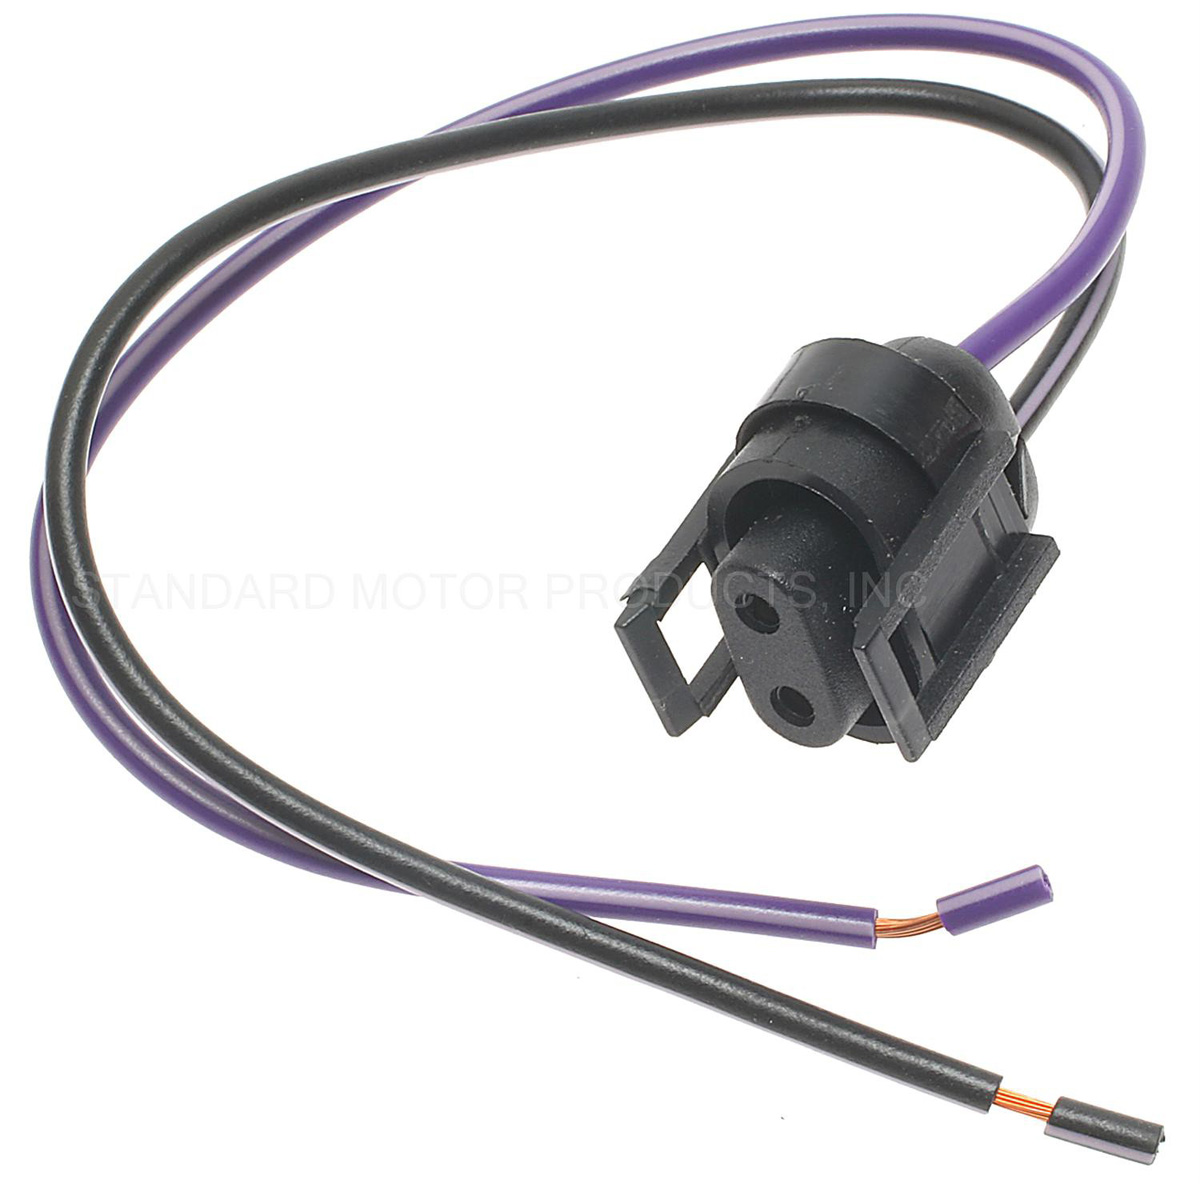 New Wire Harness For 1996 Ford Bronco Get Free Image